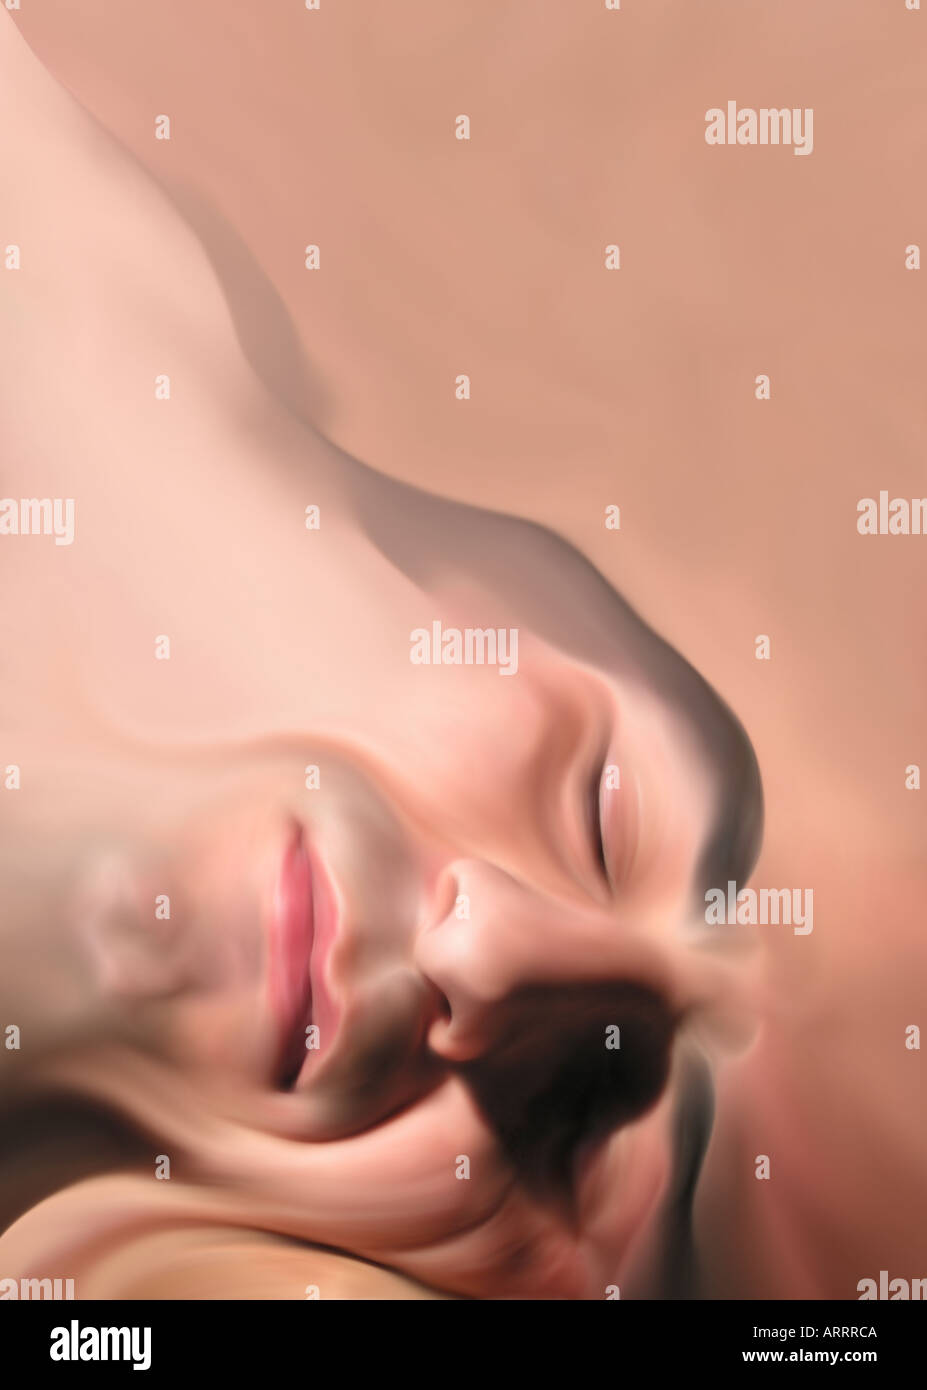 Sleeper portrait cover book poster - Stock Image